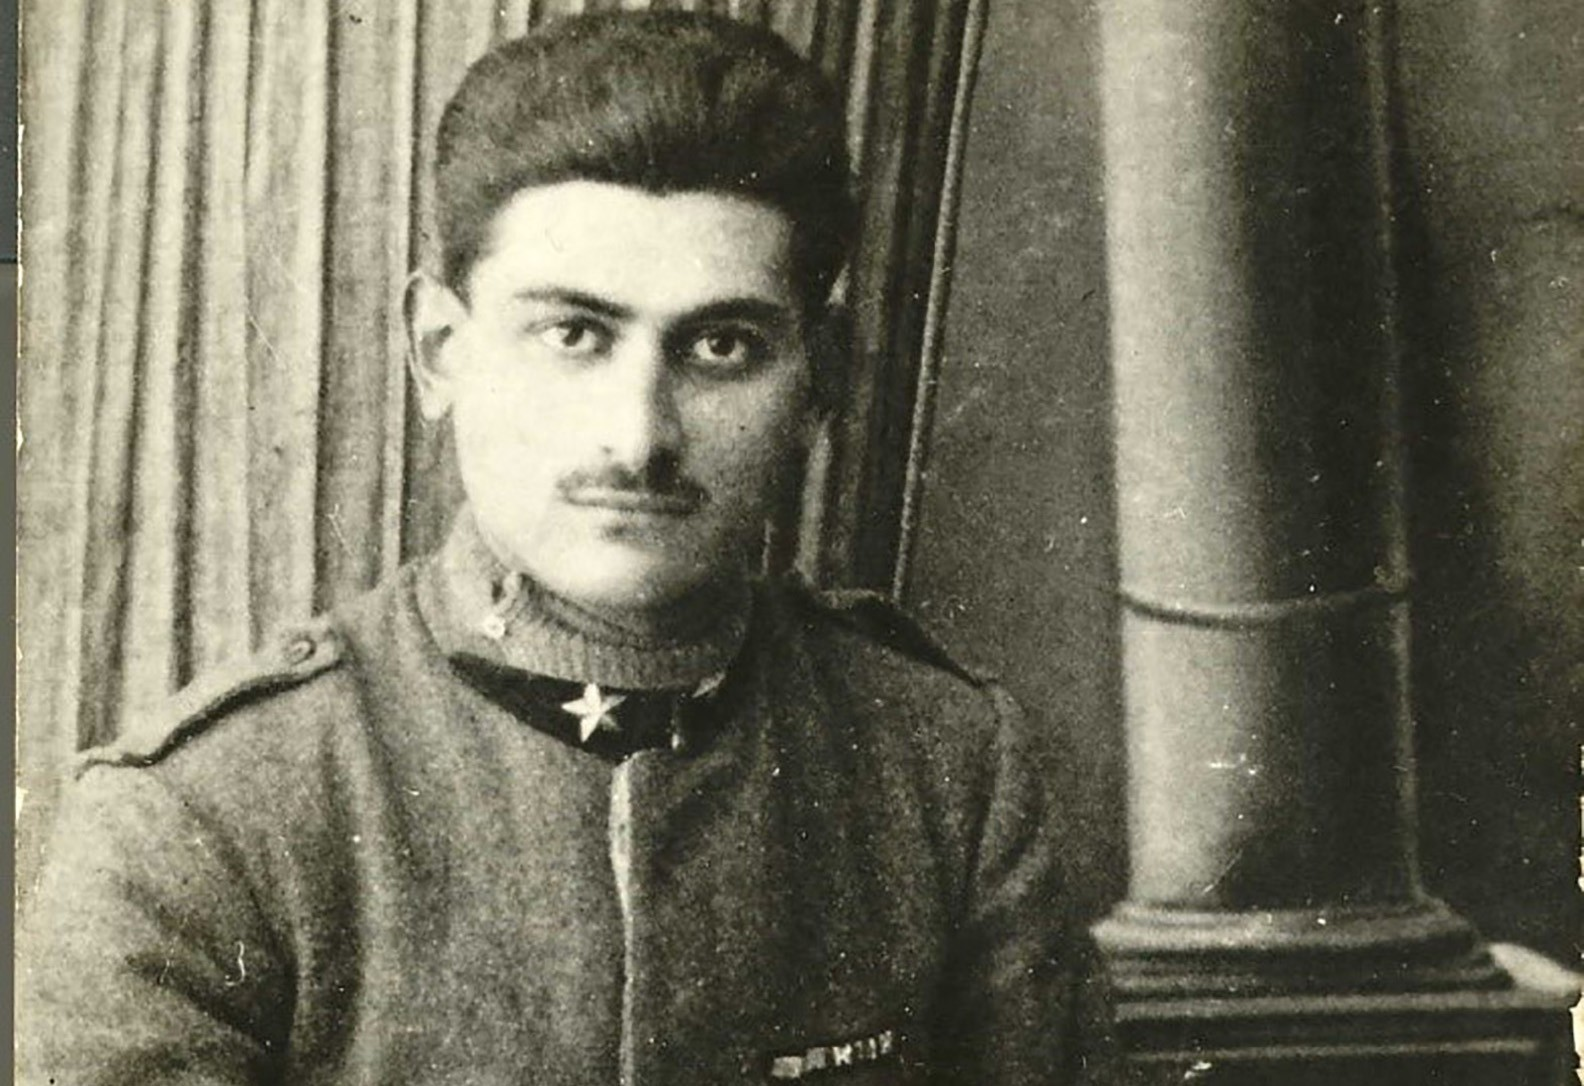 Photograph from 1918 of a young Adolfo Baldizzi in his World War I Uniform.